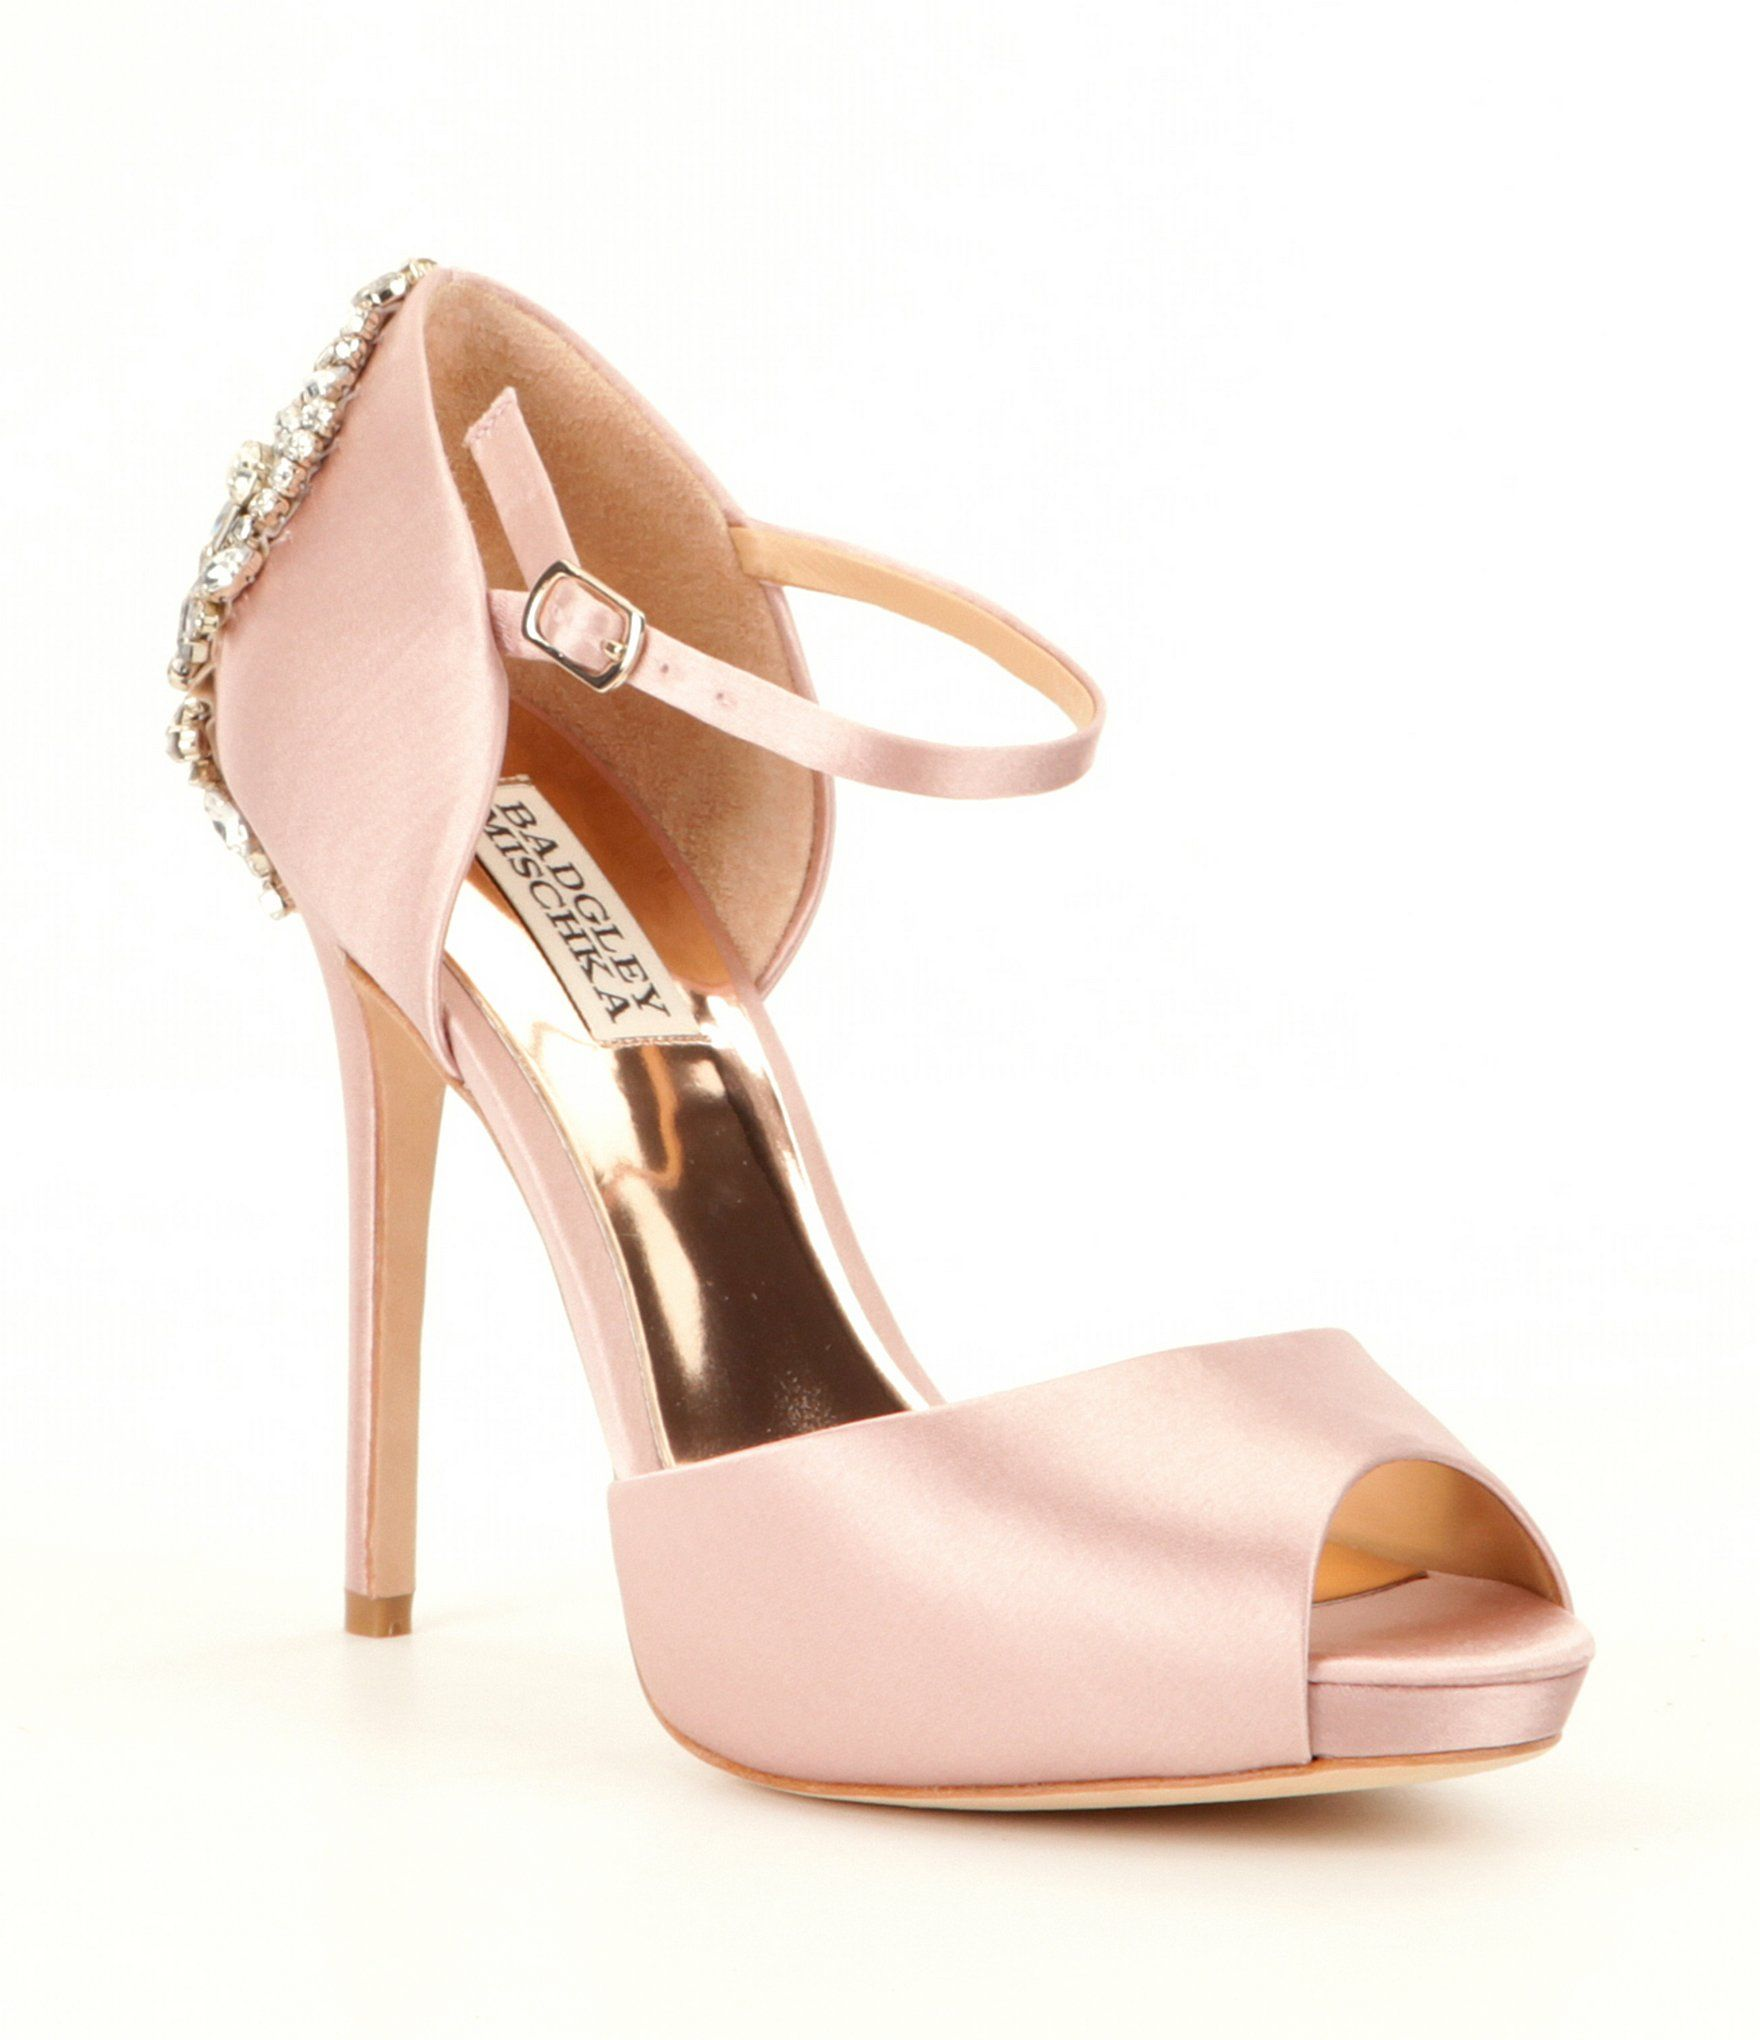 30071af7667 Shop for Badgley Mischka Dawn Rhinestone-Embellished Satin Ankle Strap Pumps  at Dillards.com. Visit Dillards.com to find clothing